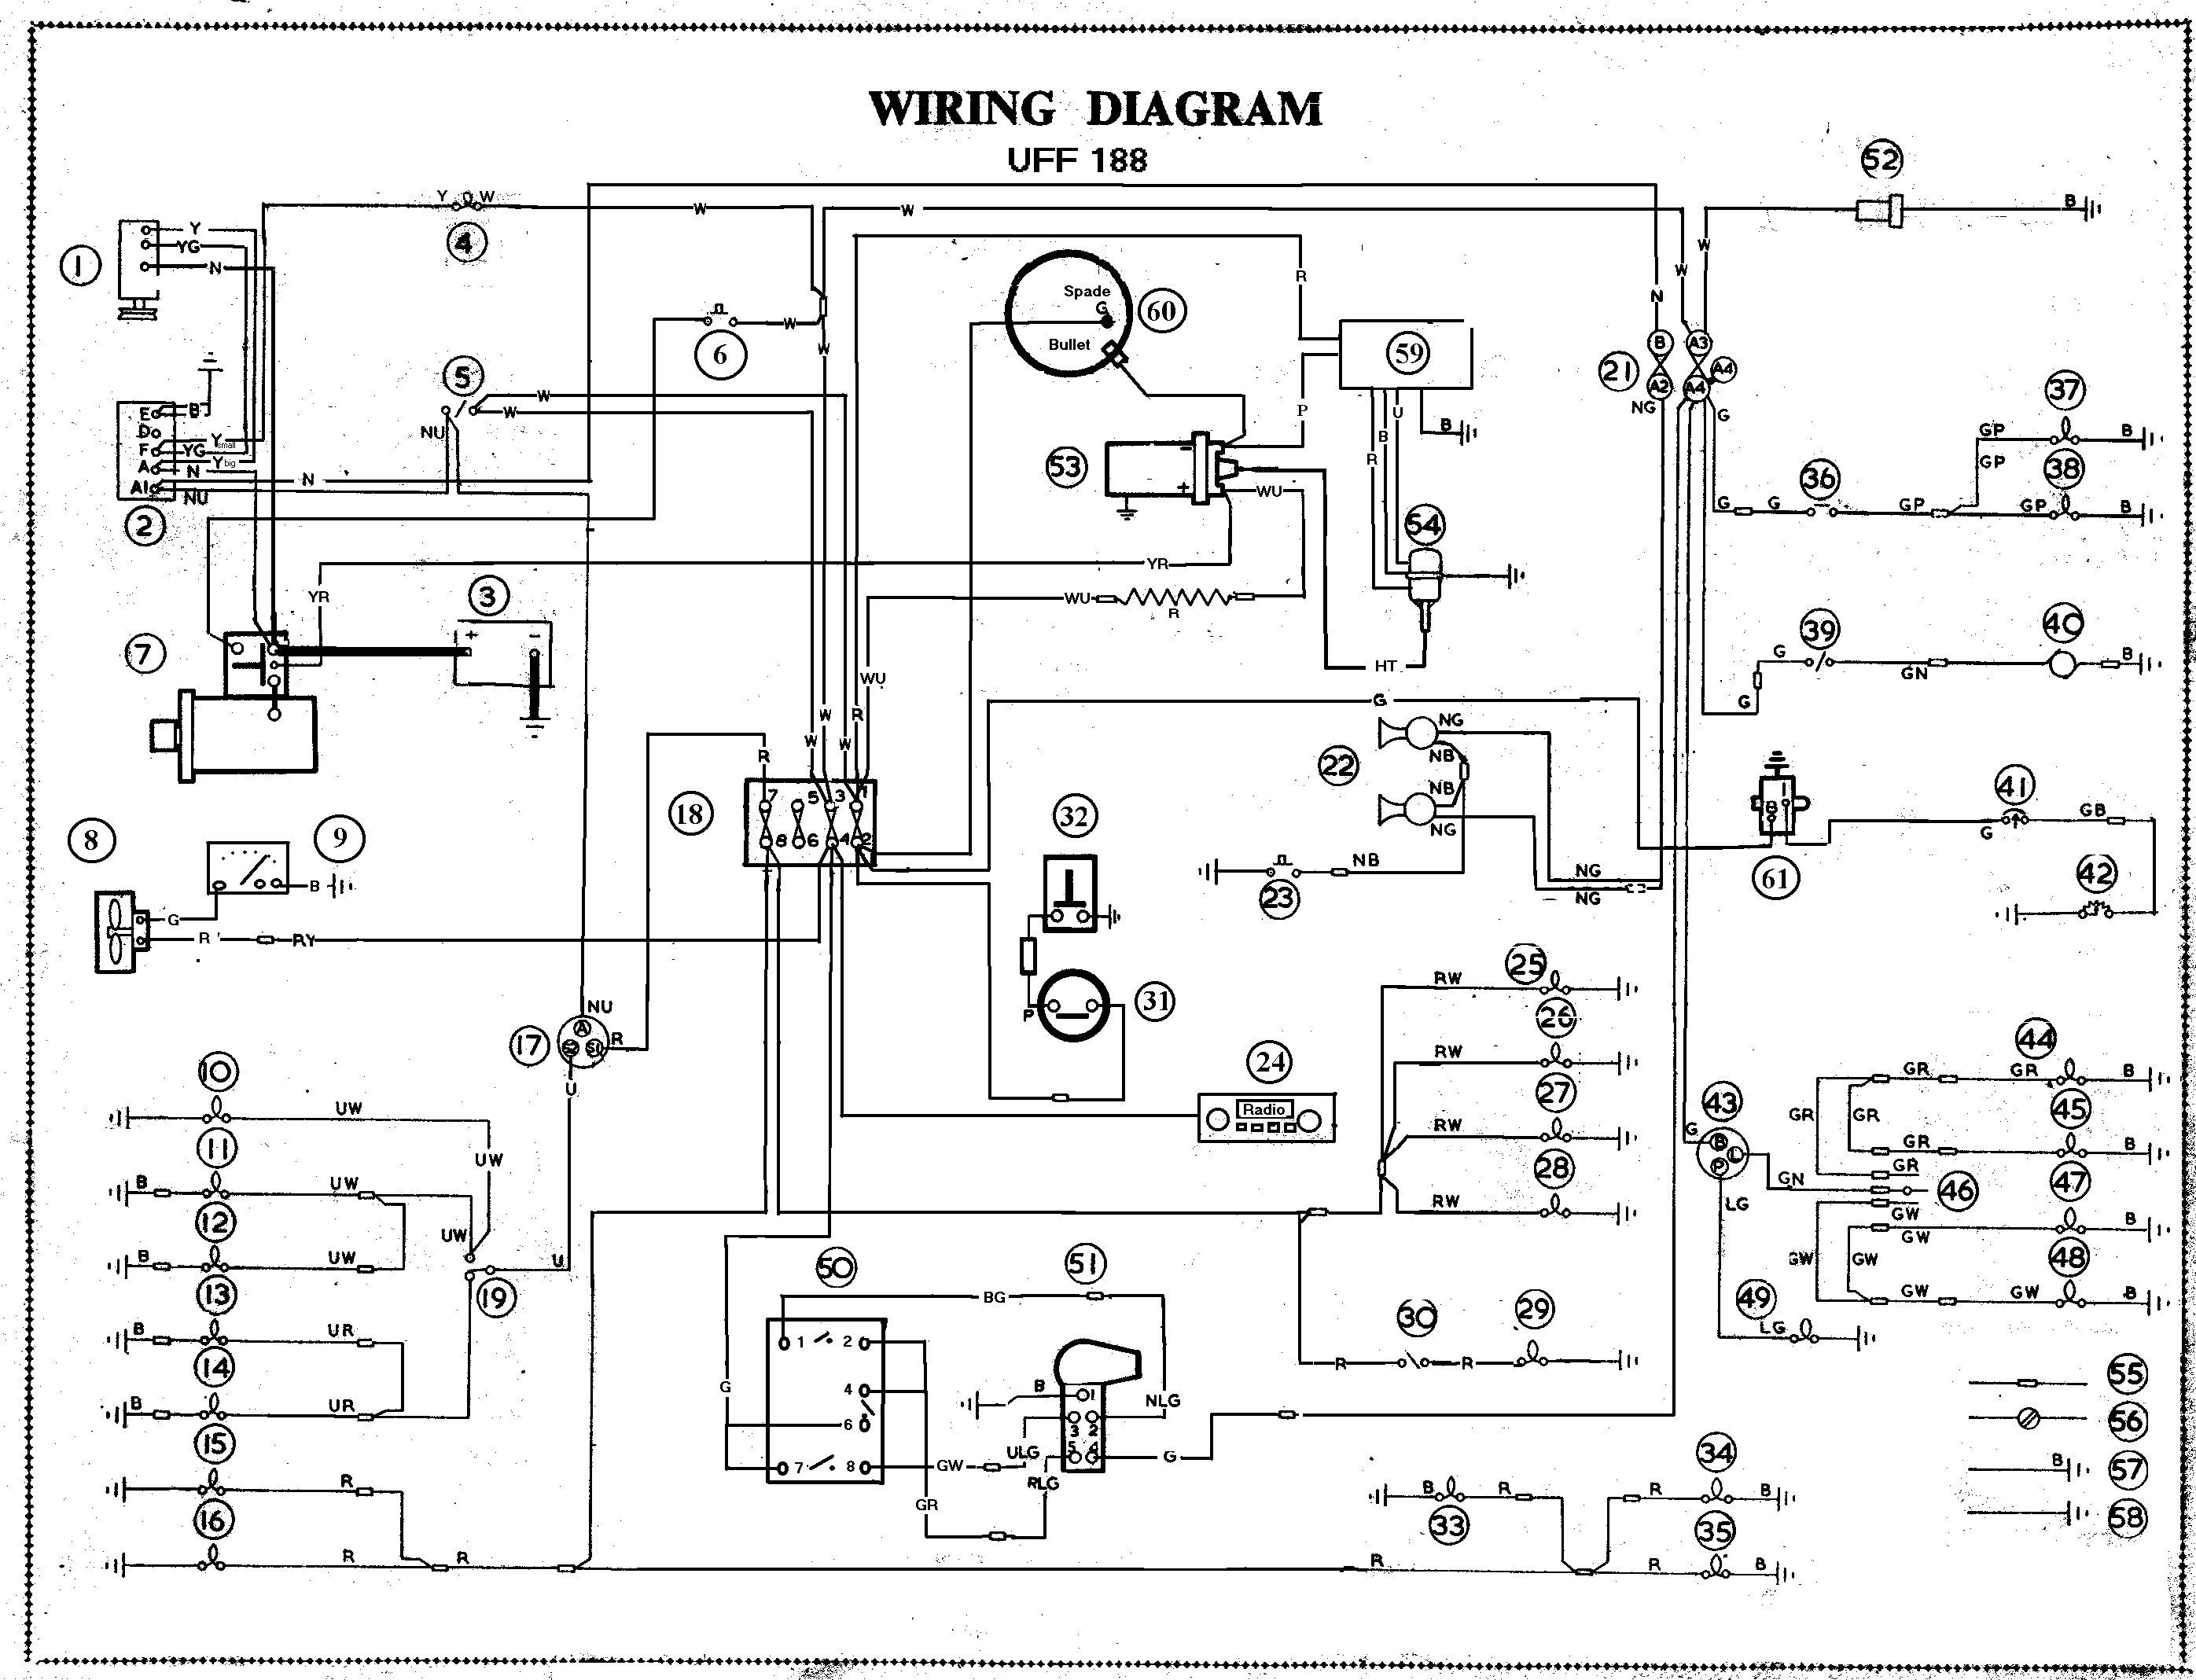 Wiring Diagram Symbols Automotive Electrical diagram